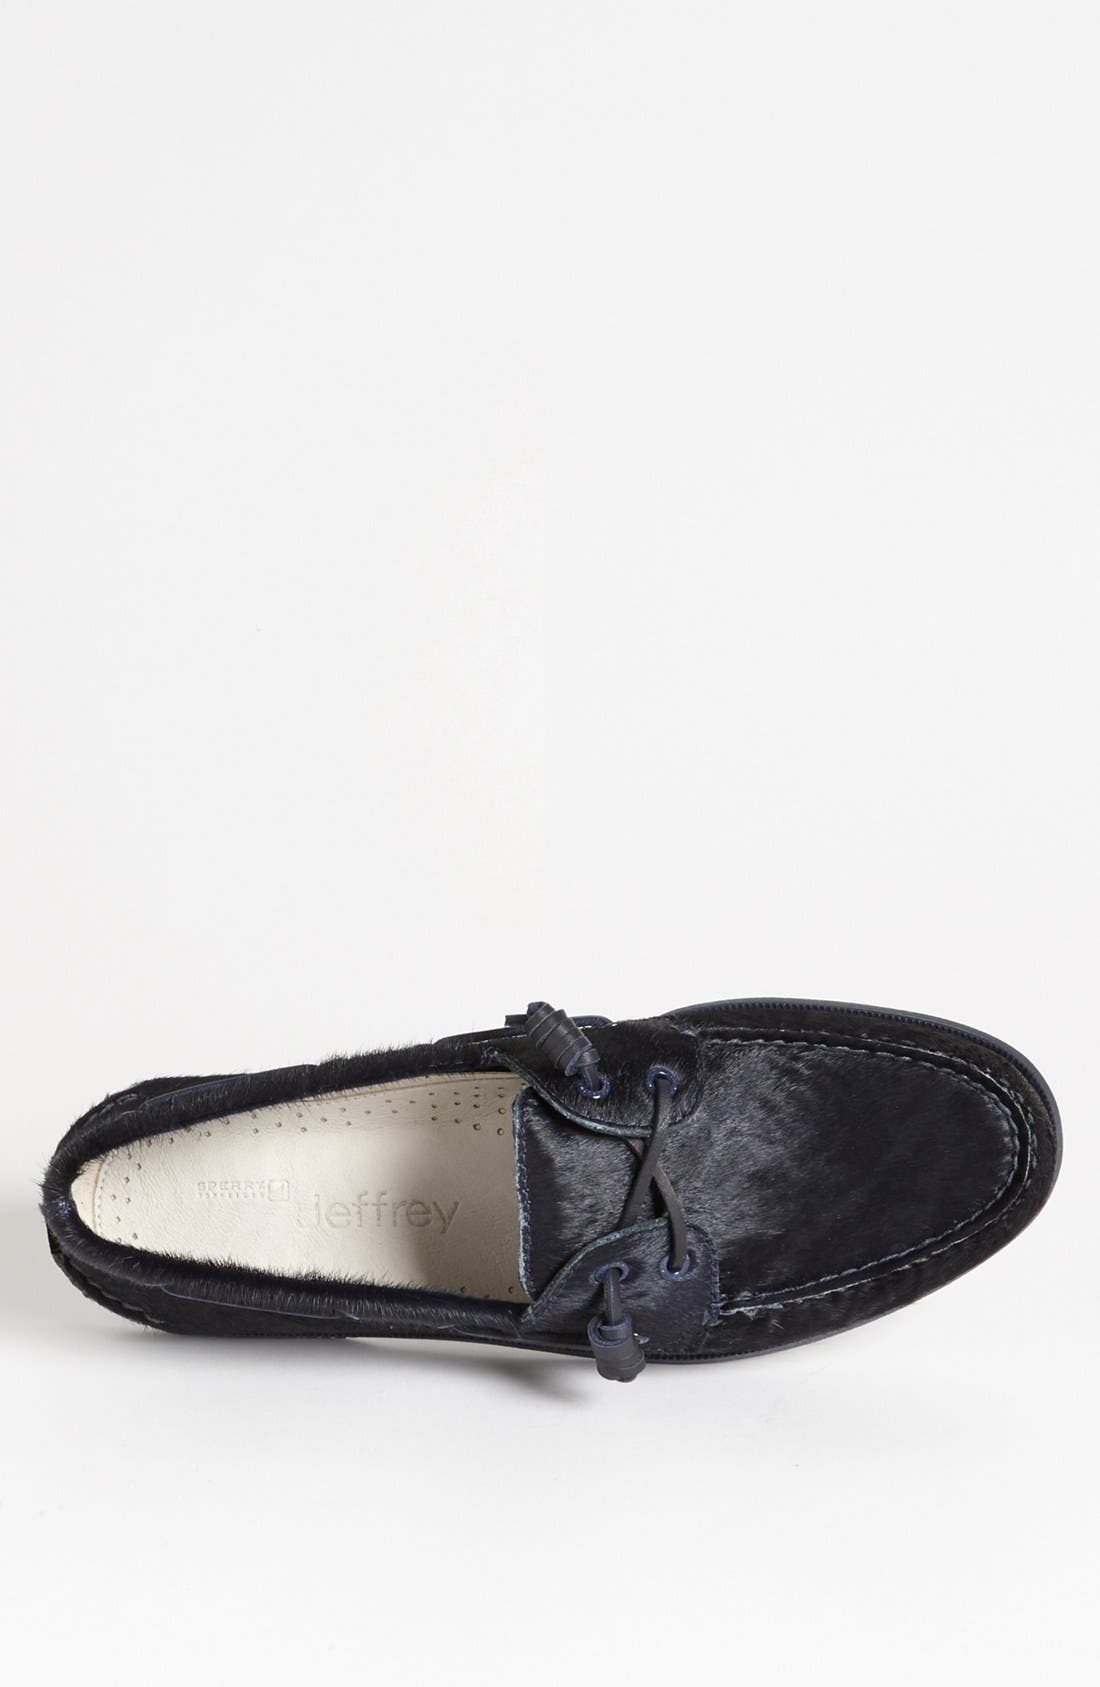 Alternate Image 3  - Sperry Top-Sider® for Jeffrey 'Authentic Original' Calf Hair Boat Shoe